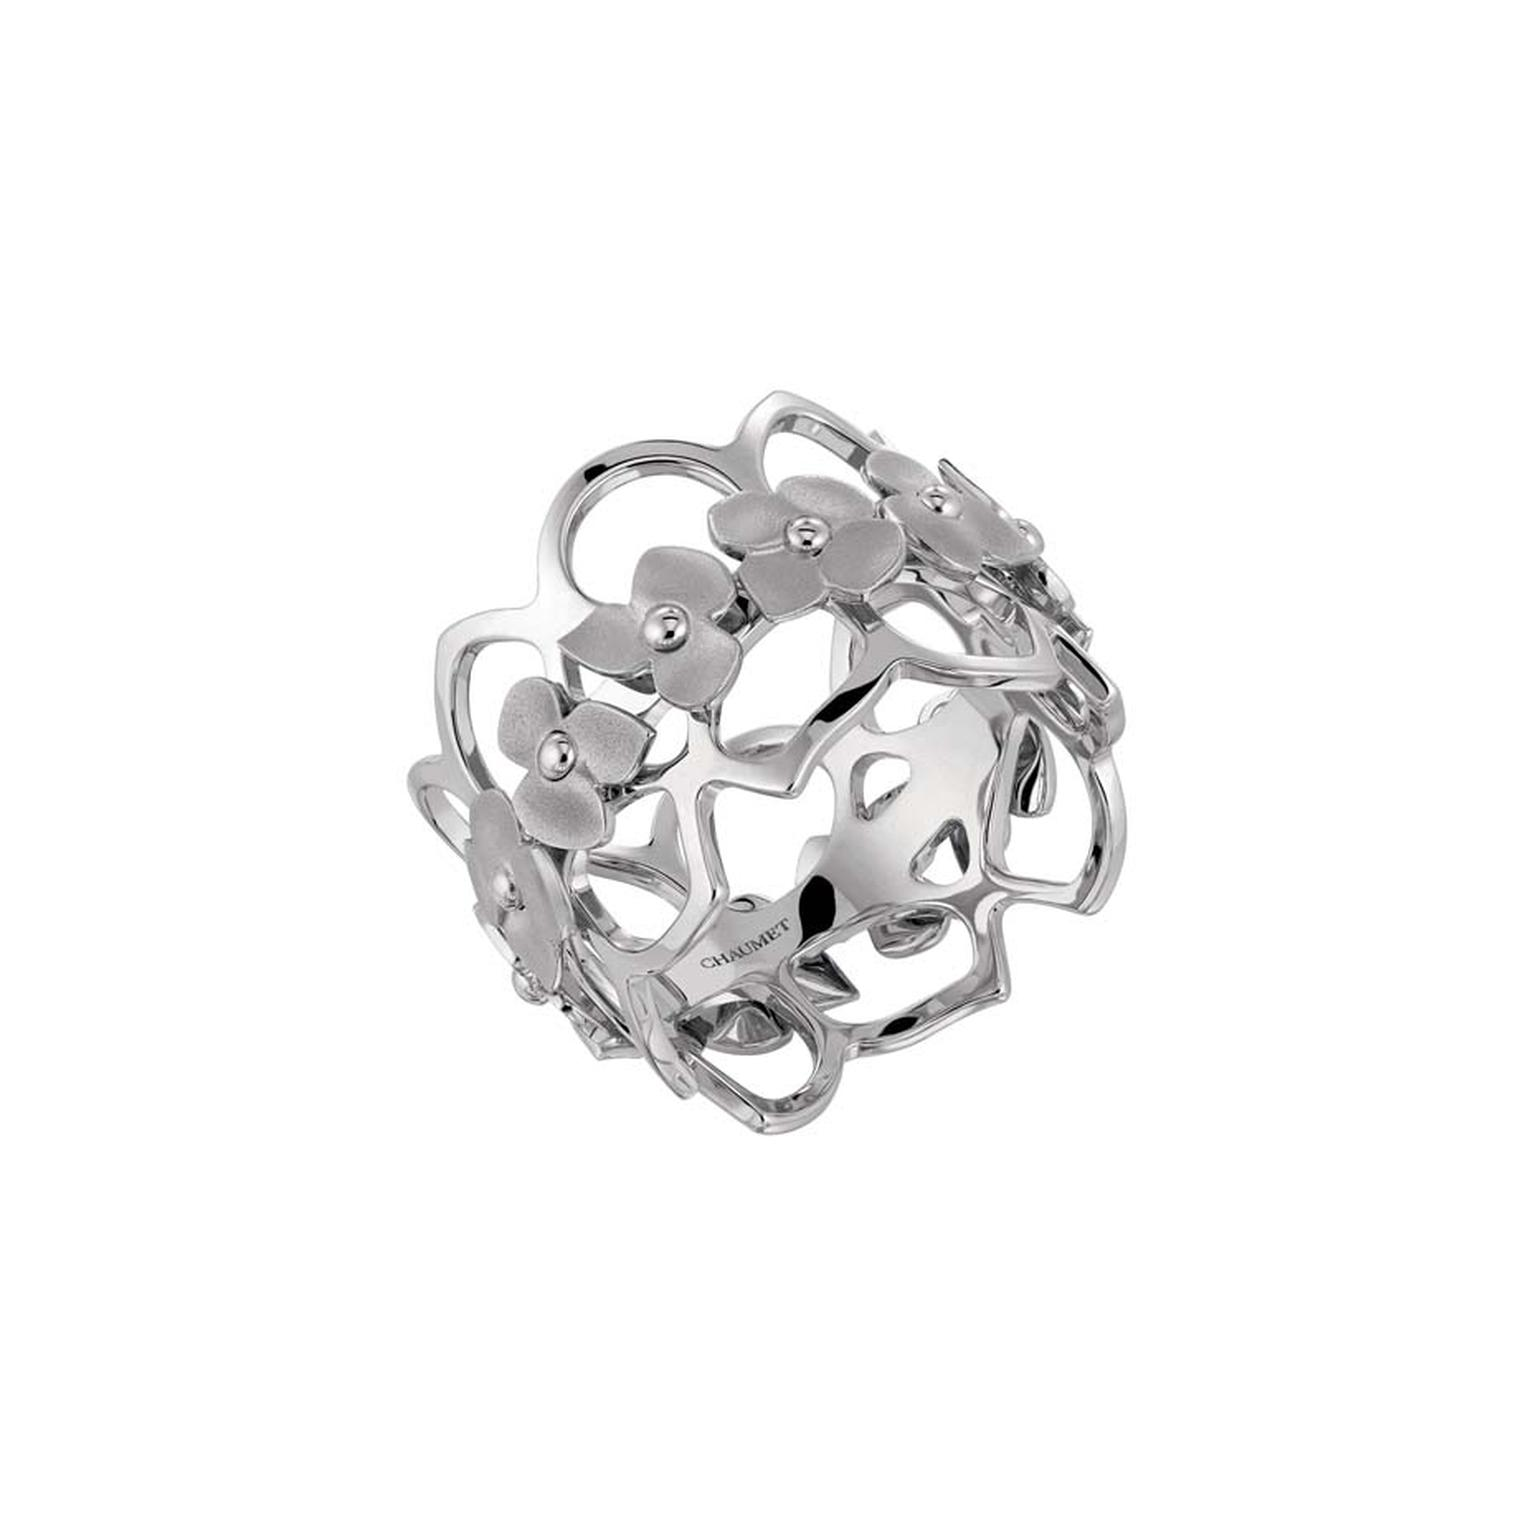 Chaumet Hortensia ring in white gold.